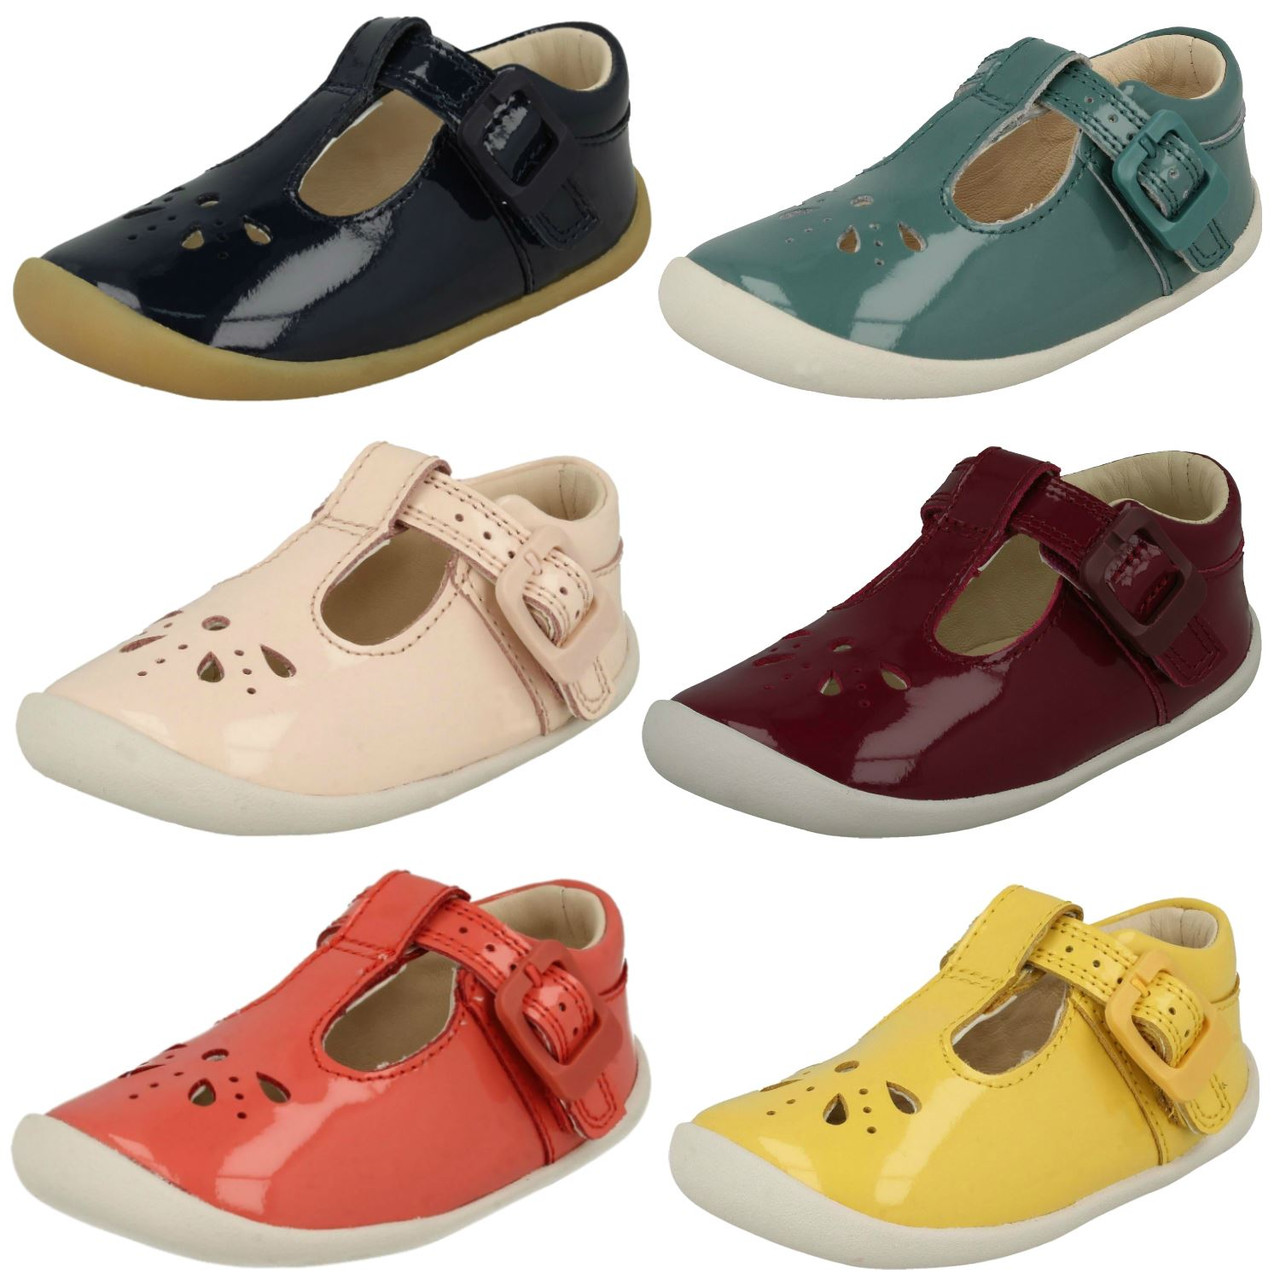 GIRLS CLARKS PINK LEATHER SHOES LILFOLKLOU